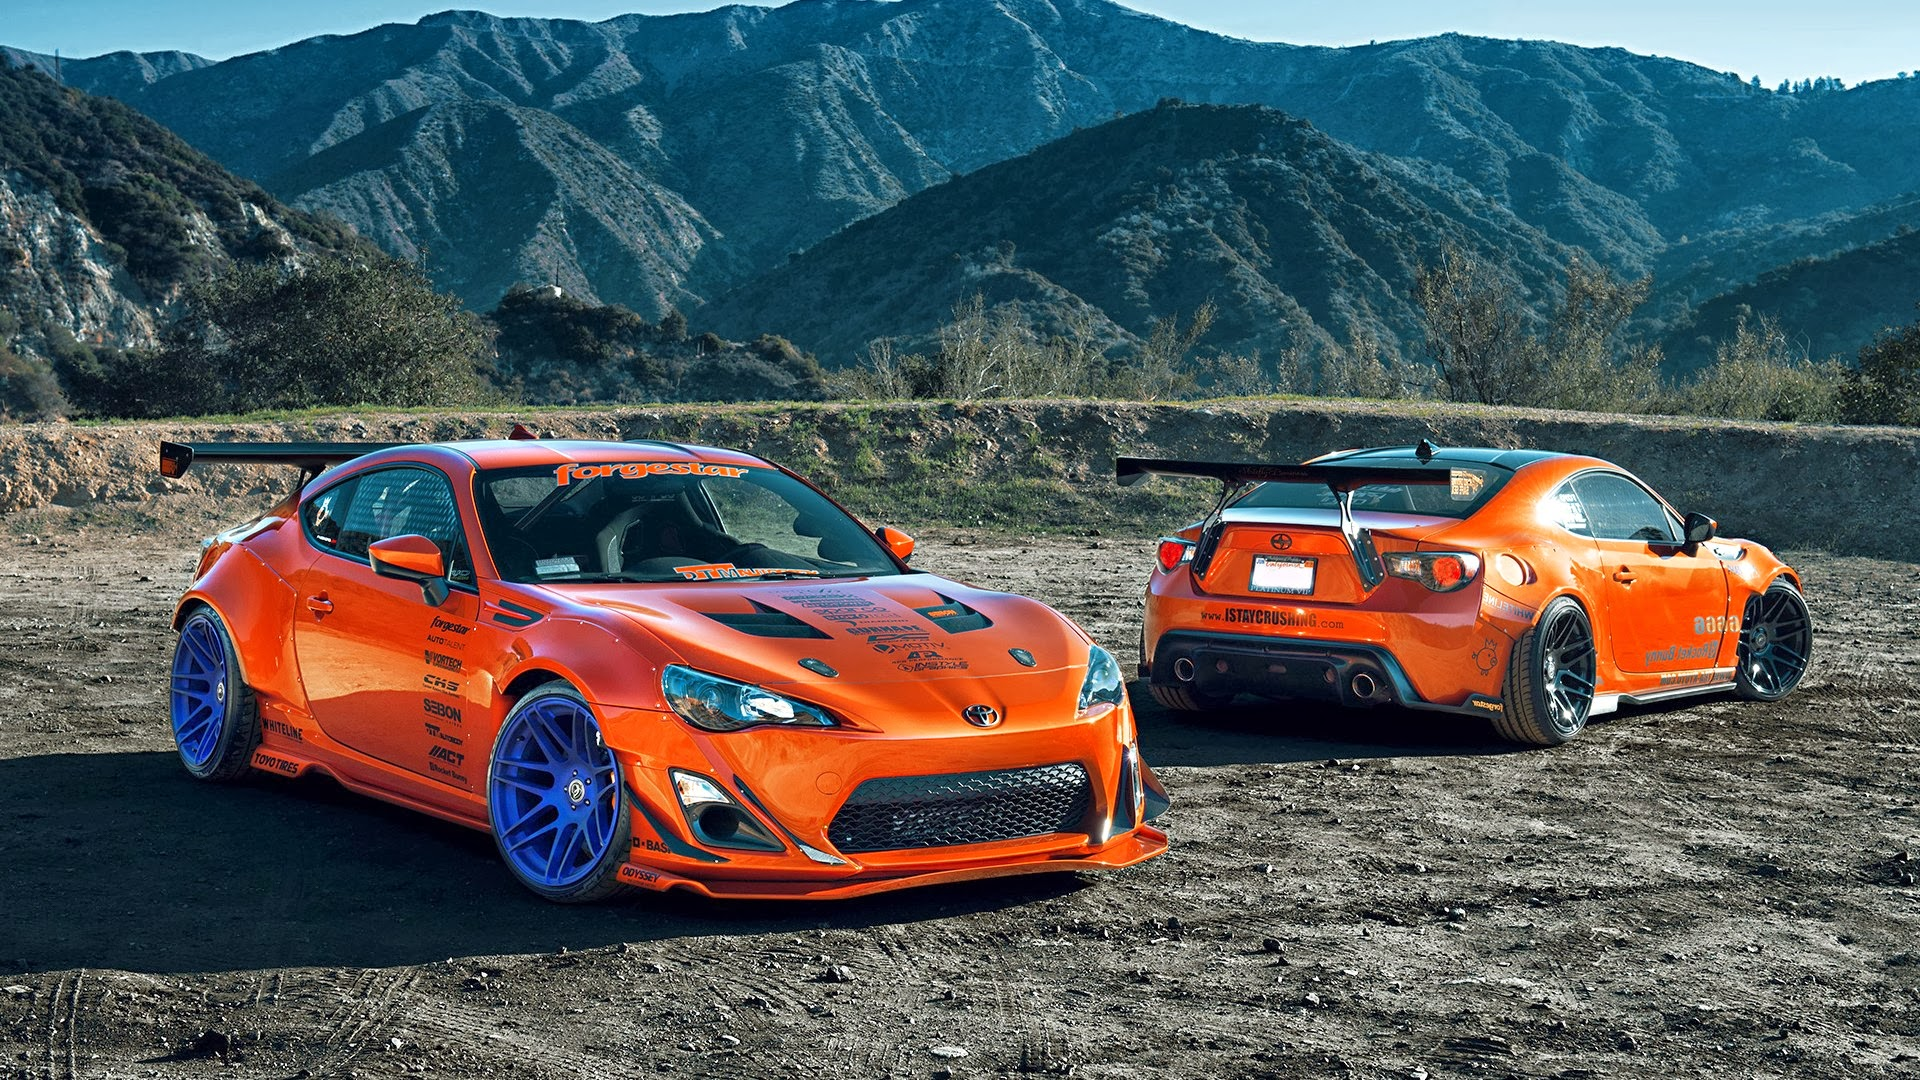 Toyota GT86 Tuning Car   New Car Modification 1920x1080